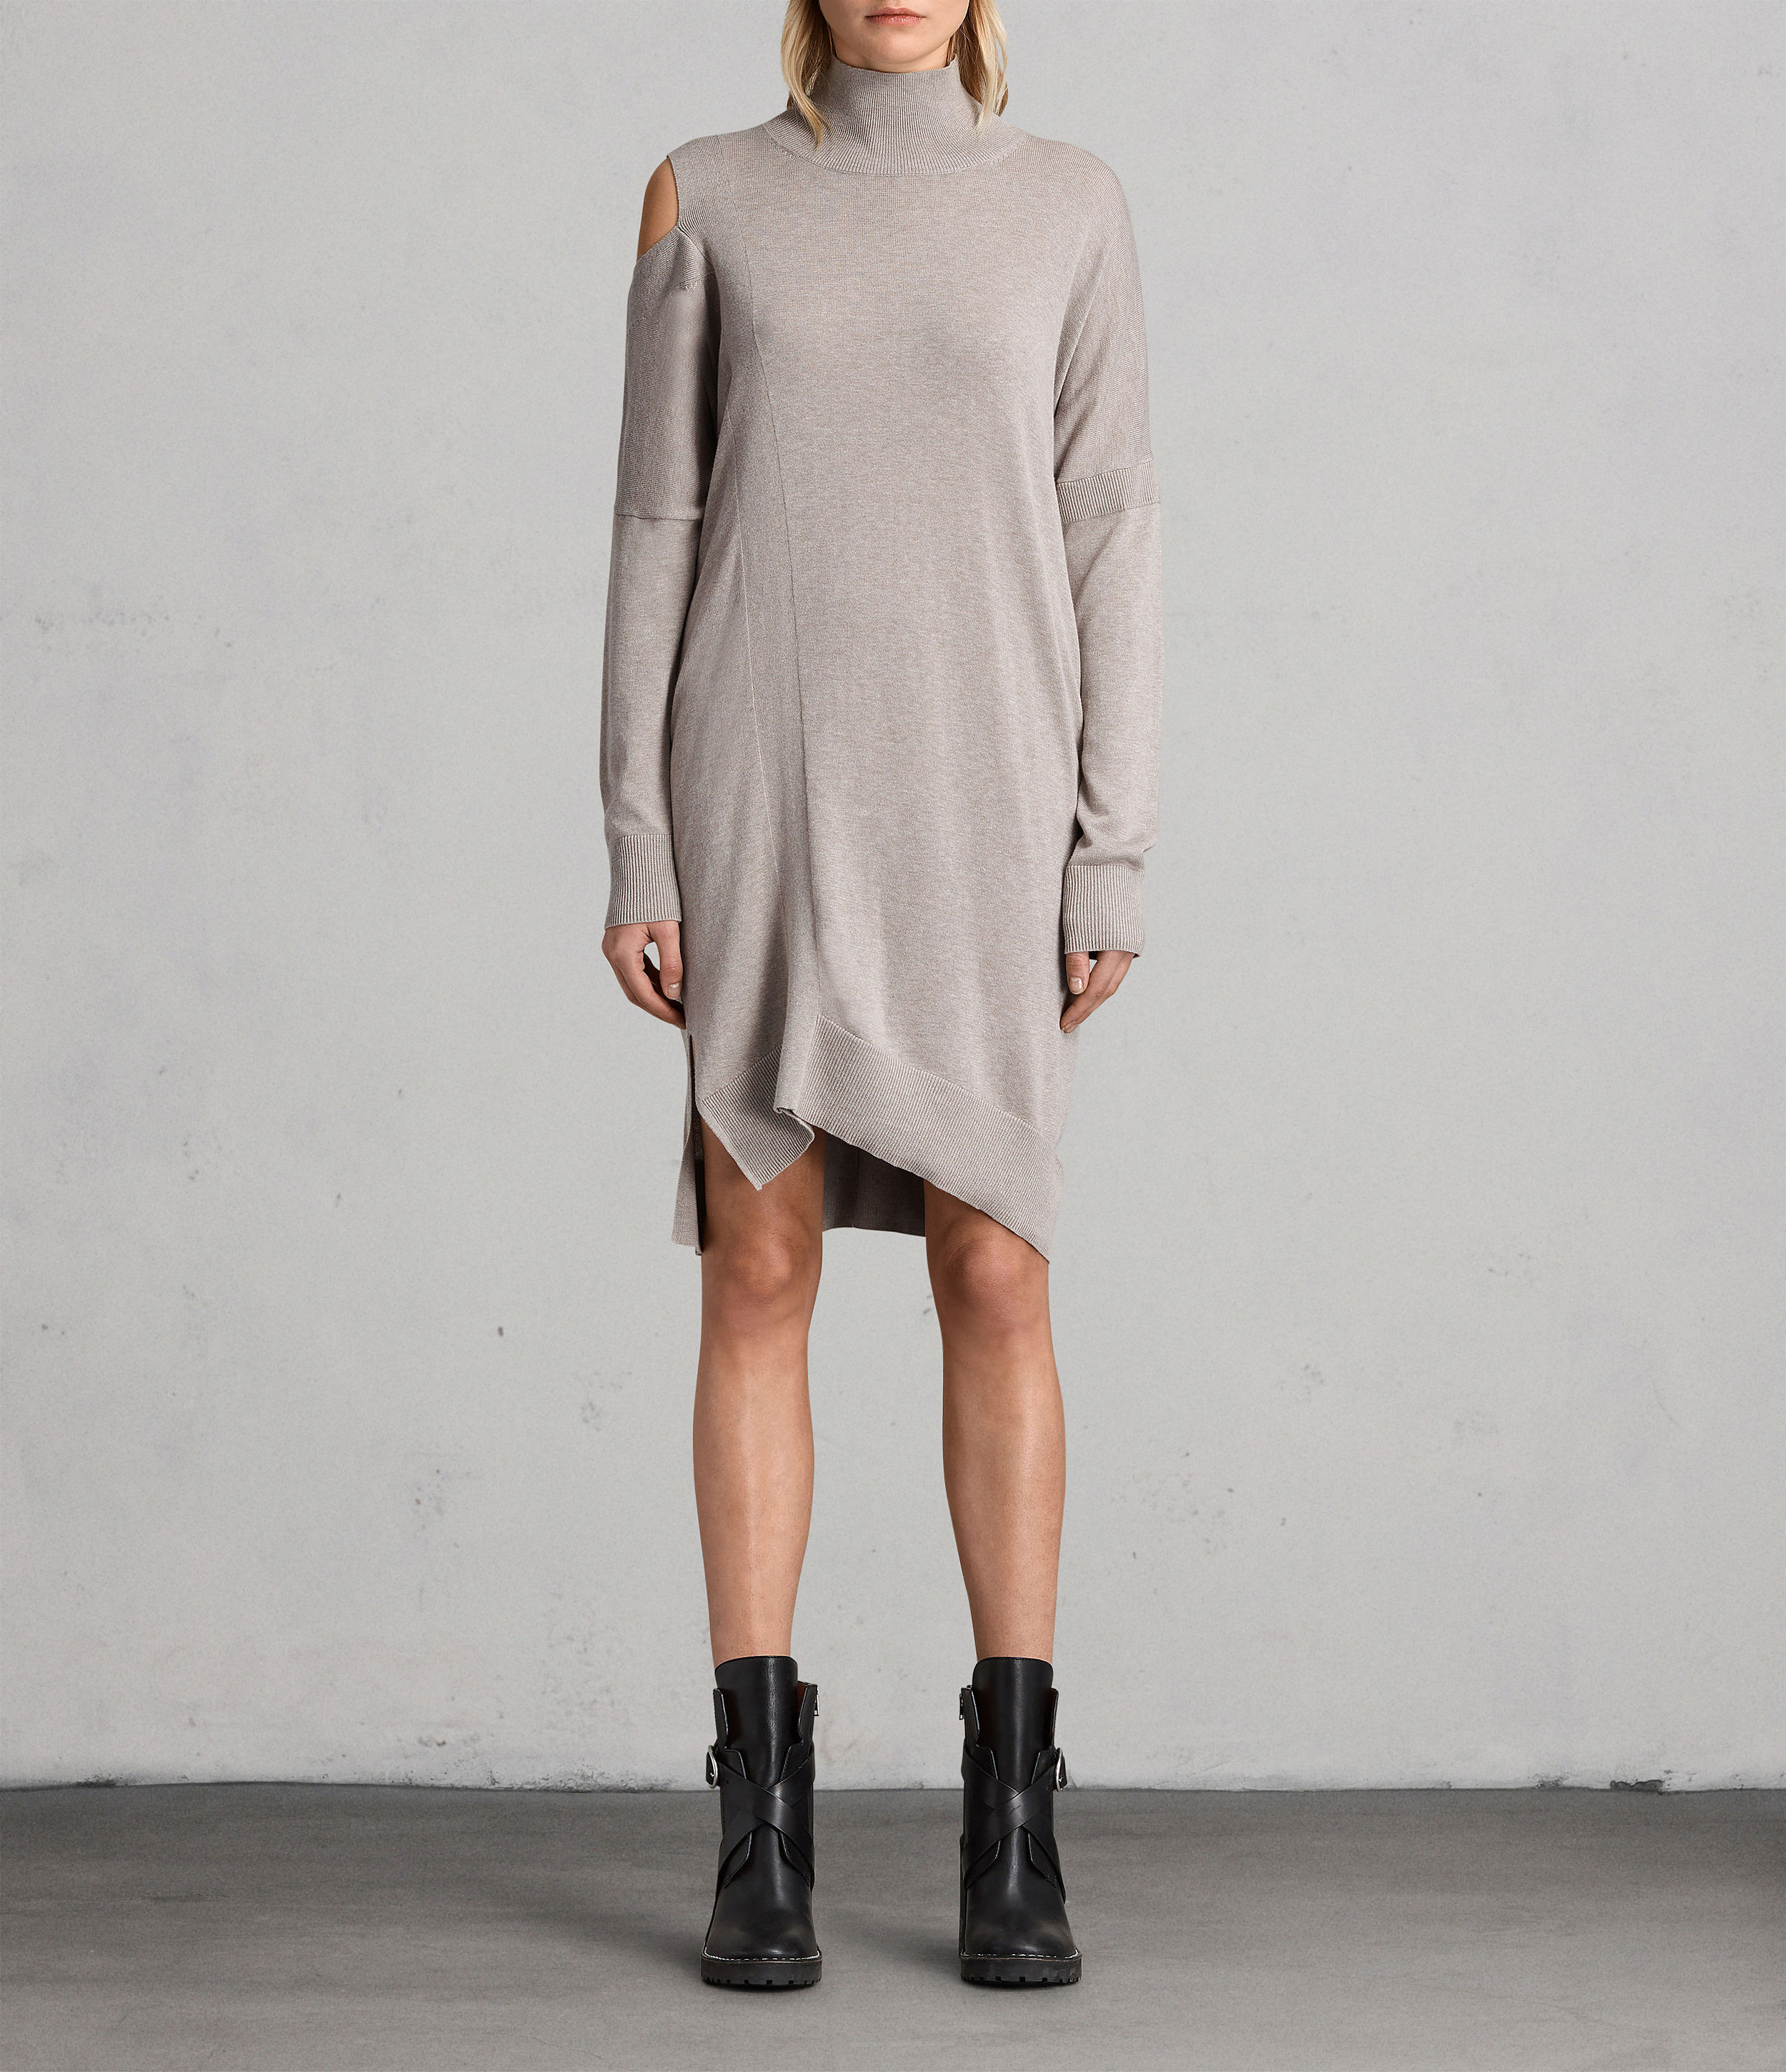 Shop Allsaints Dresses for Women - Obsessory 464299258